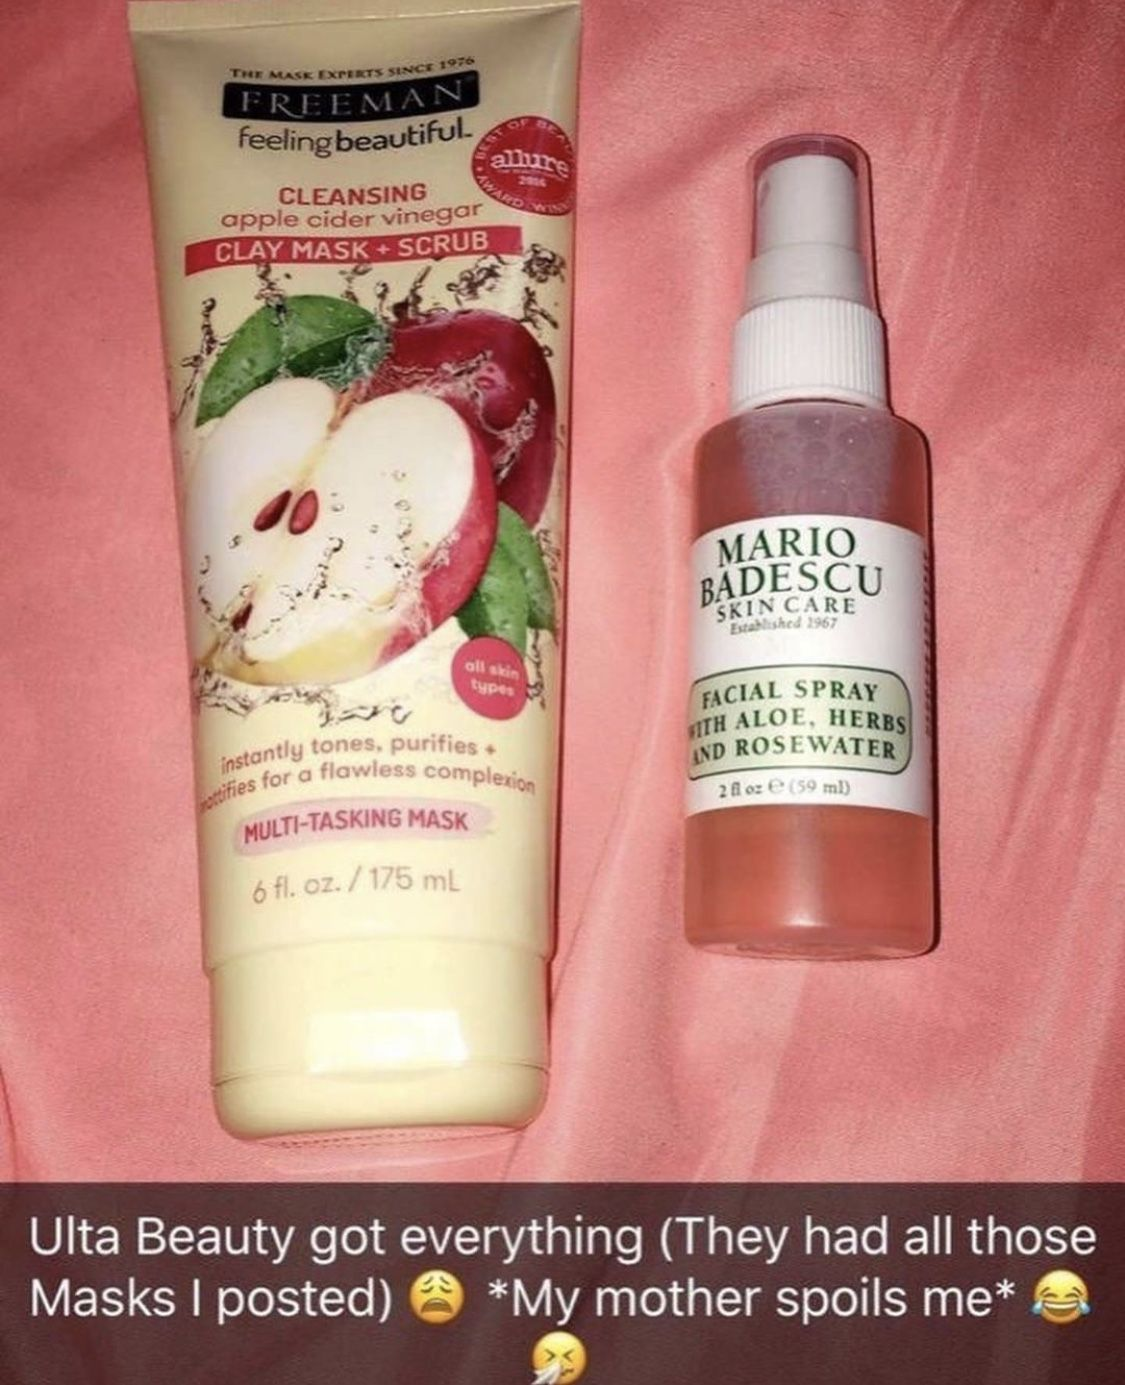 Pin by Ⓓⓐⓢⓘⓐ Ⓐⓡⓜⓞⓝⓘ on Self care Mario badescu skin care